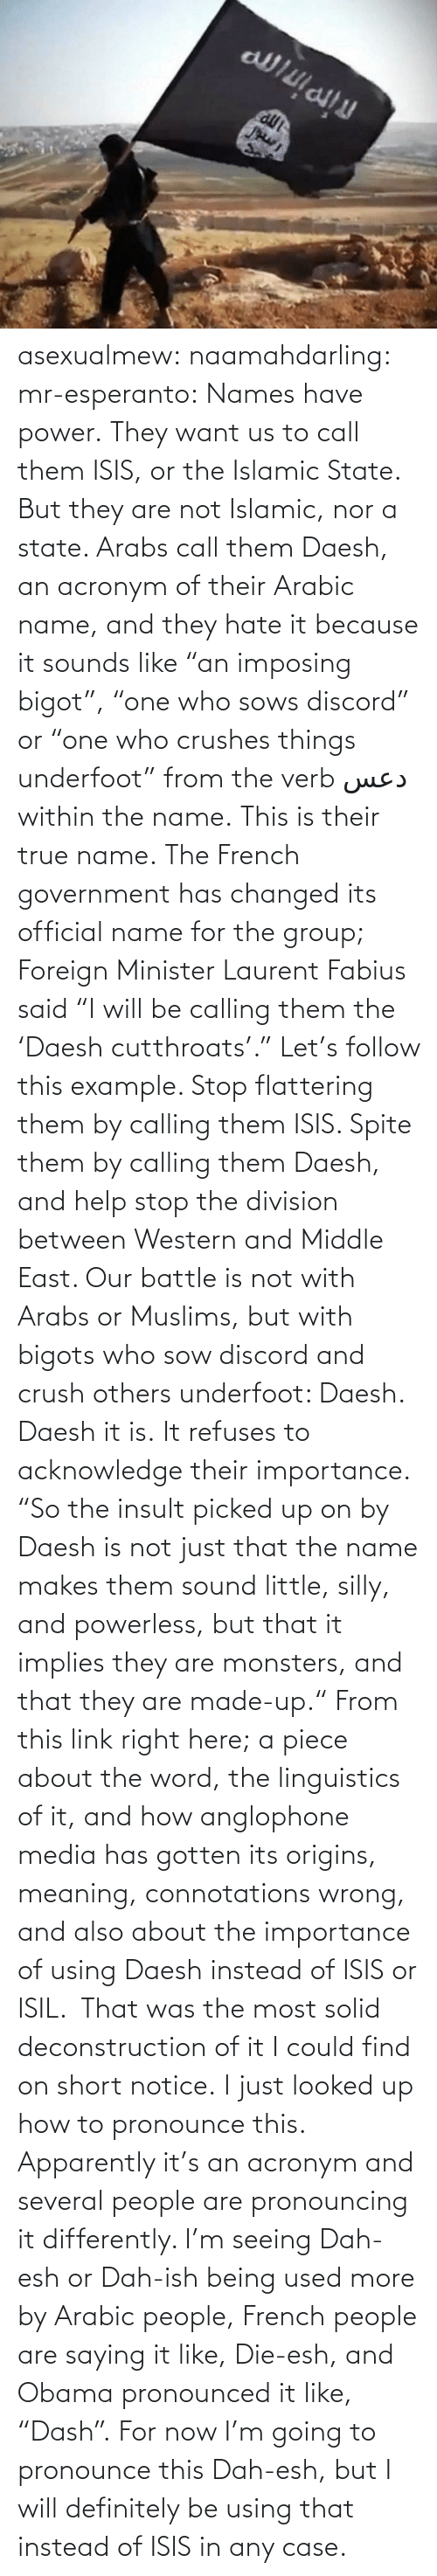 "French People: asexualmew:  naamahdarling:  mr-esperanto:  Names have power.  They want us to call them ISIS, or the Islamic State.  But they are not Islamic, nor a state. Arabs call them Daesh, an acronym of their Arabic name, and they hate it because it sounds like ""an imposing bigot"", ""one who sows discord"" or ""one who crushes things underfoot"" from the verb دعس within the name.  This is their true name.  The French government has changed its official name for the group; Foreign Minister Laurent Fabius said ""I will be calling them the 'Daesh cutthroats'.""  Let's follow this example. Stop flattering them by calling them ISIS.  Spite them by calling them Daesh, and help stop the division between Western and Middle East.  Our battle is not with Arabs or Muslims, but with bigots who sow discord and crush others underfoot: Daesh.  Daesh it is. It refuses to acknowledge their importance. ""So the insult picked up on by Daesh is not just that the name makes them sound little, silly, and powerless, but that it implies they are monsters, and that they are made-up."" From this link right here; a piece about the word, the linguistics of it, and how anglophone media has gotten its origins, meaning, connotations wrong, and also about the importance of using Daesh instead of ISIS or ISIL.  That was the most solid deconstruction of it I could find on short notice.  I just looked up how to pronounce this. Apparently it's an acronym and several people are pronouncing it differently.  I'm seeing Dah-esh or Dah-ish being used more by Arabic people, French people are saying it like, Die-esh, and Obama pronounced it like, ""Dash"". For now I'm going to pronounce this Dah-esh, but I will definitely be using that instead of ISIS in any case."